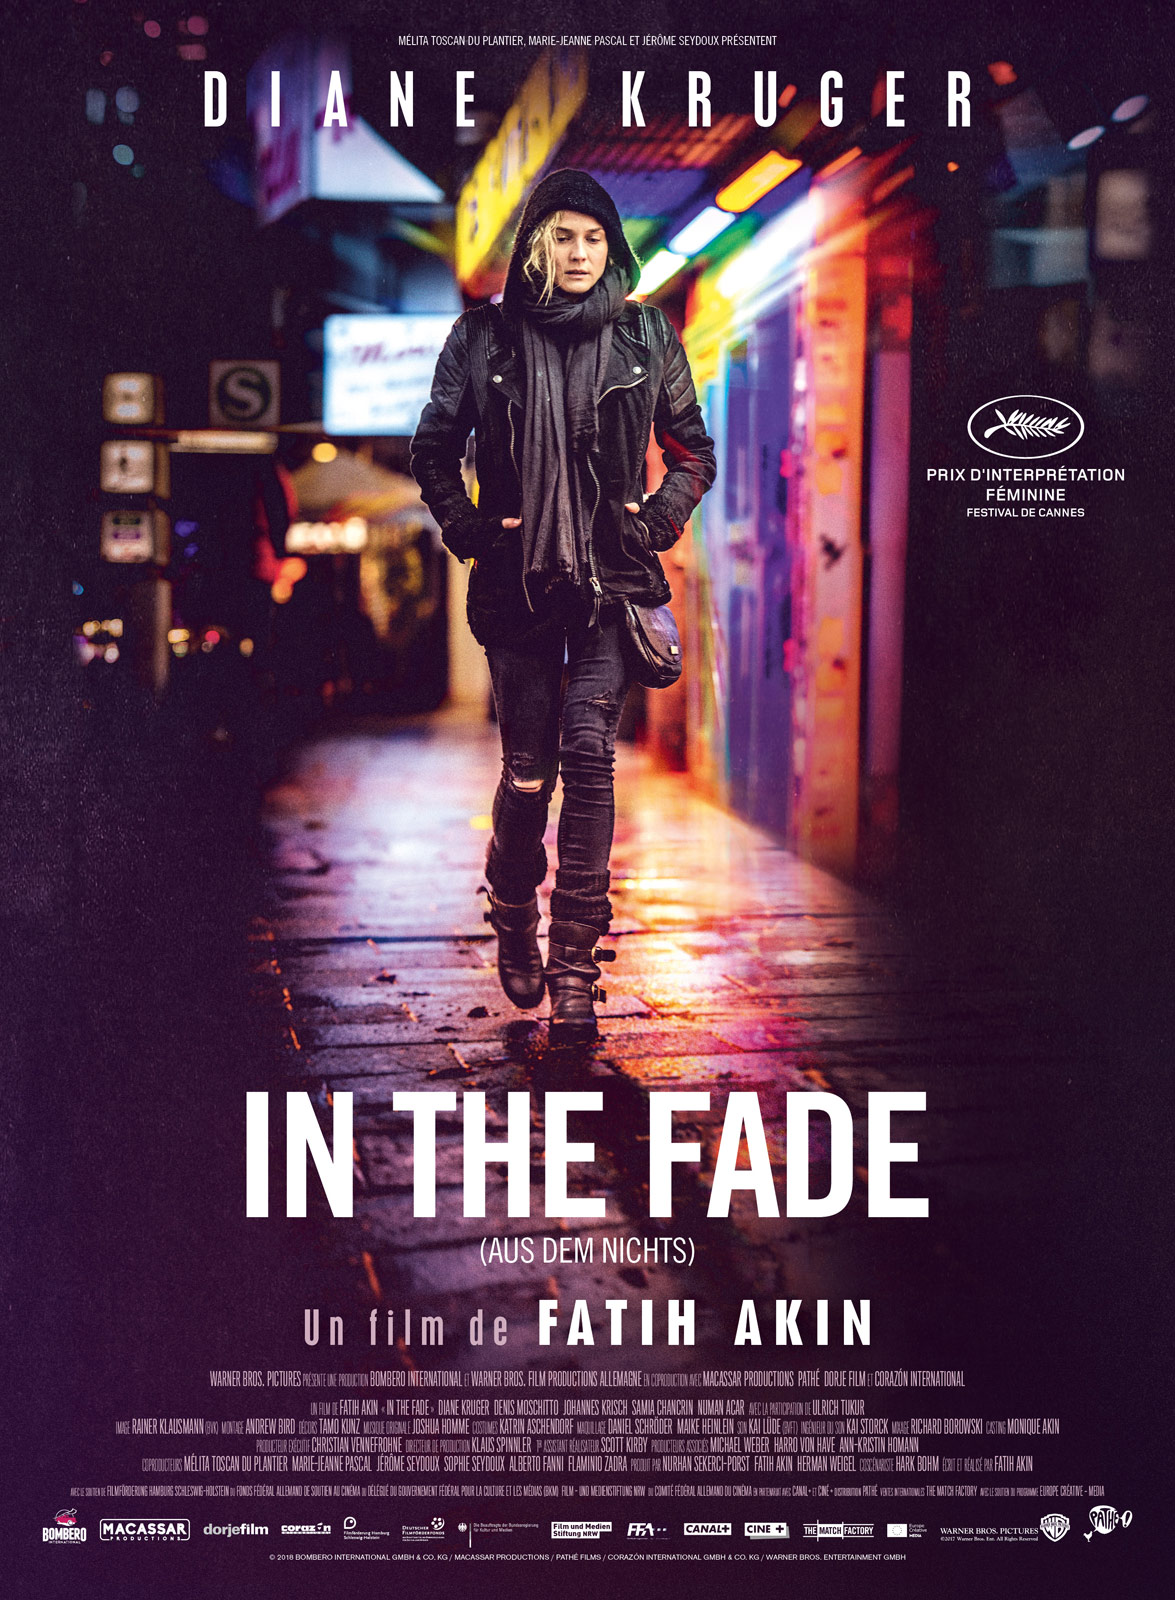 Affiche Du Film In The Fade Affiche 1 Sur 1 Allocin 233